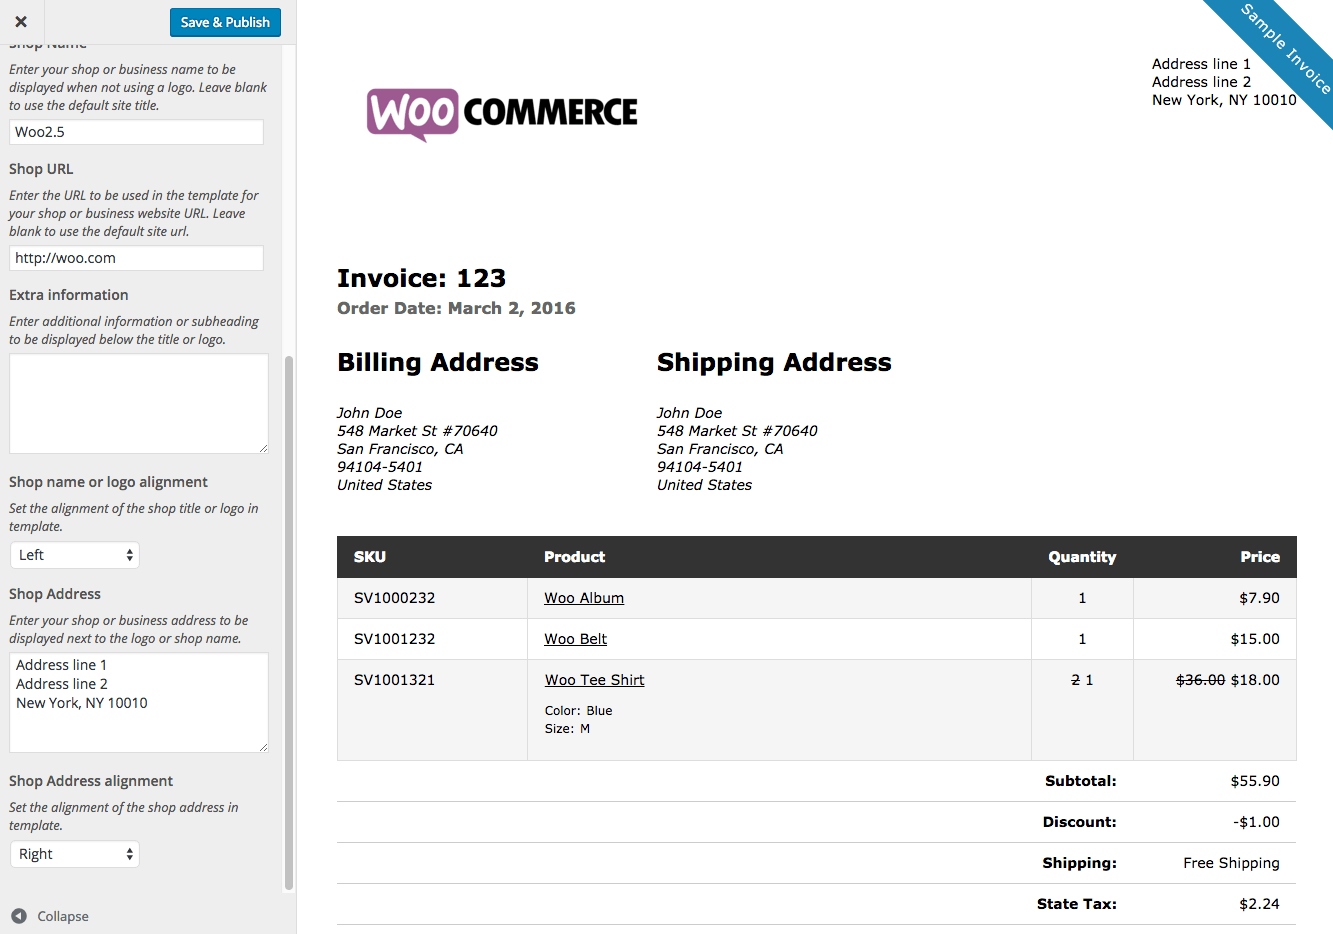 Patriotexpressus  Pleasing Woocommerce Print Invoices Amp Packing Lists  Woocommerce Docs With Lovable Woocommerce Print Invoices  Packing Lists Customizer With Beautiful Oil Change Receipt Template Also Customer Receipts In Addition Western Union Receipts And How To Keep Receipts Organized As Well As Walmart Receipt Savings Additionally Taxable Gross Receipts From Docswoocommercecom With Patriotexpressus  Lovable Woocommerce Print Invoices Amp Packing Lists  Woocommerce Docs With Beautiful Woocommerce Print Invoices  Packing Lists Customizer And Pleasing Oil Change Receipt Template Also Customer Receipts In Addition Western Union Receipts From Docswoocommercecom